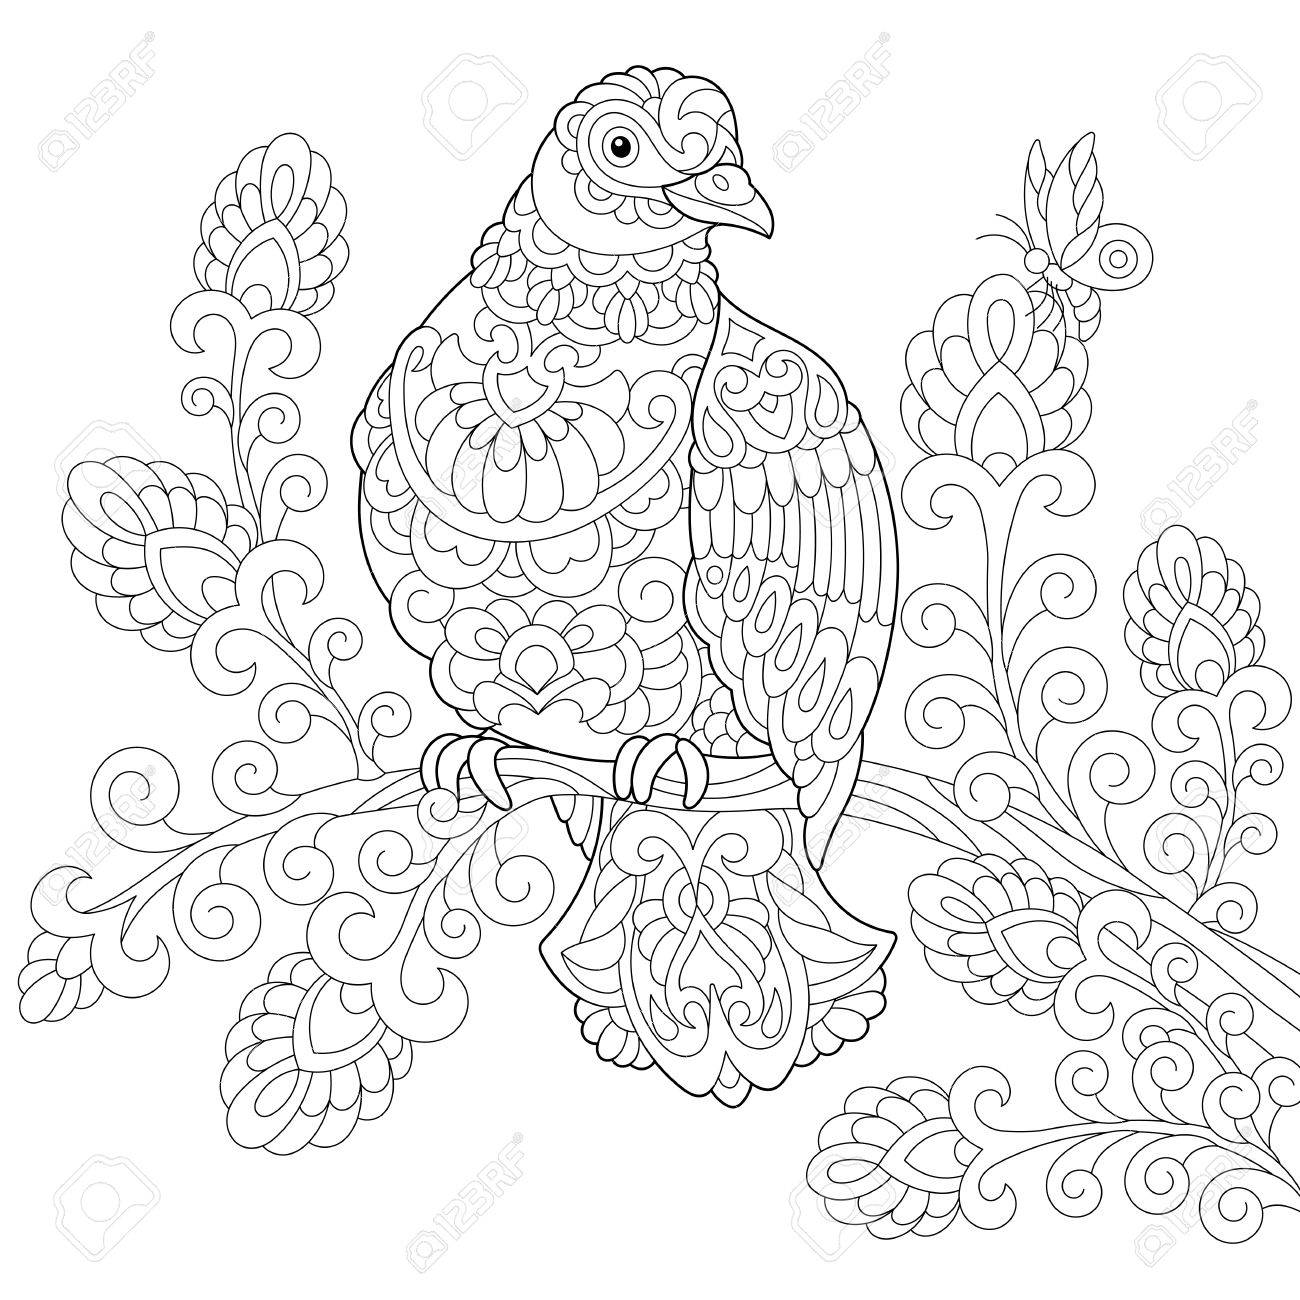 1300x1300 Coloring Page Of Dove (Pigeon) Bird. Freehand Sketch Drawing